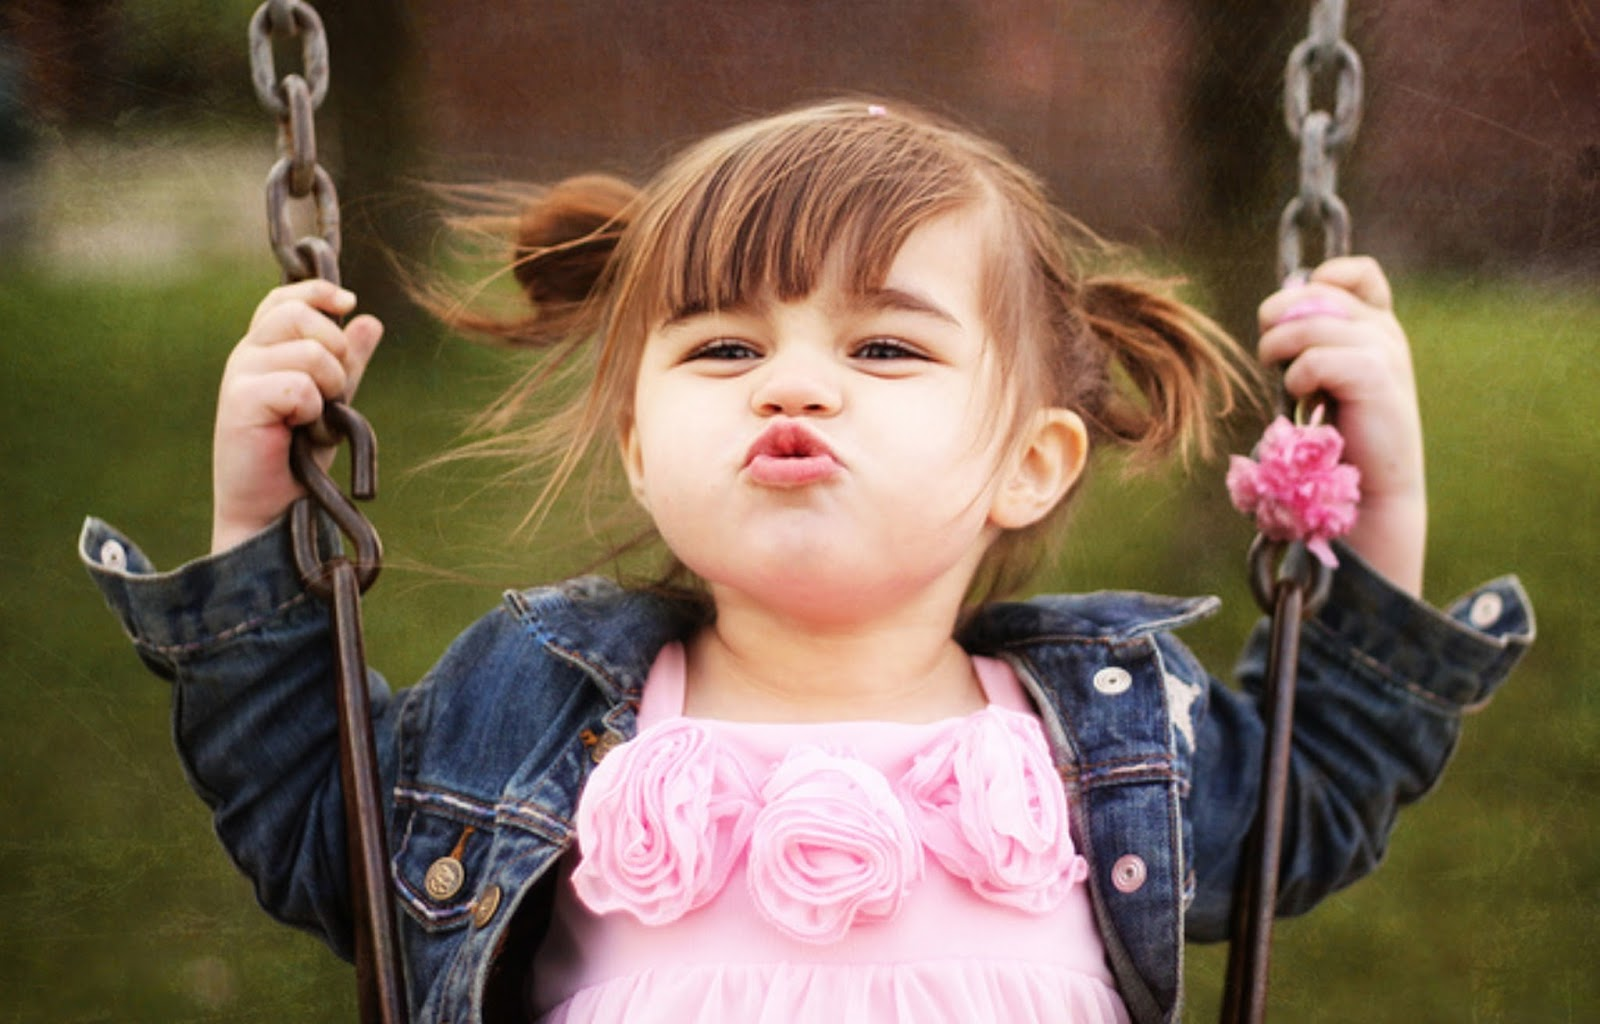 Love Quotes Cute Baby Cute Baby Wallpaper Cute Girls Pics